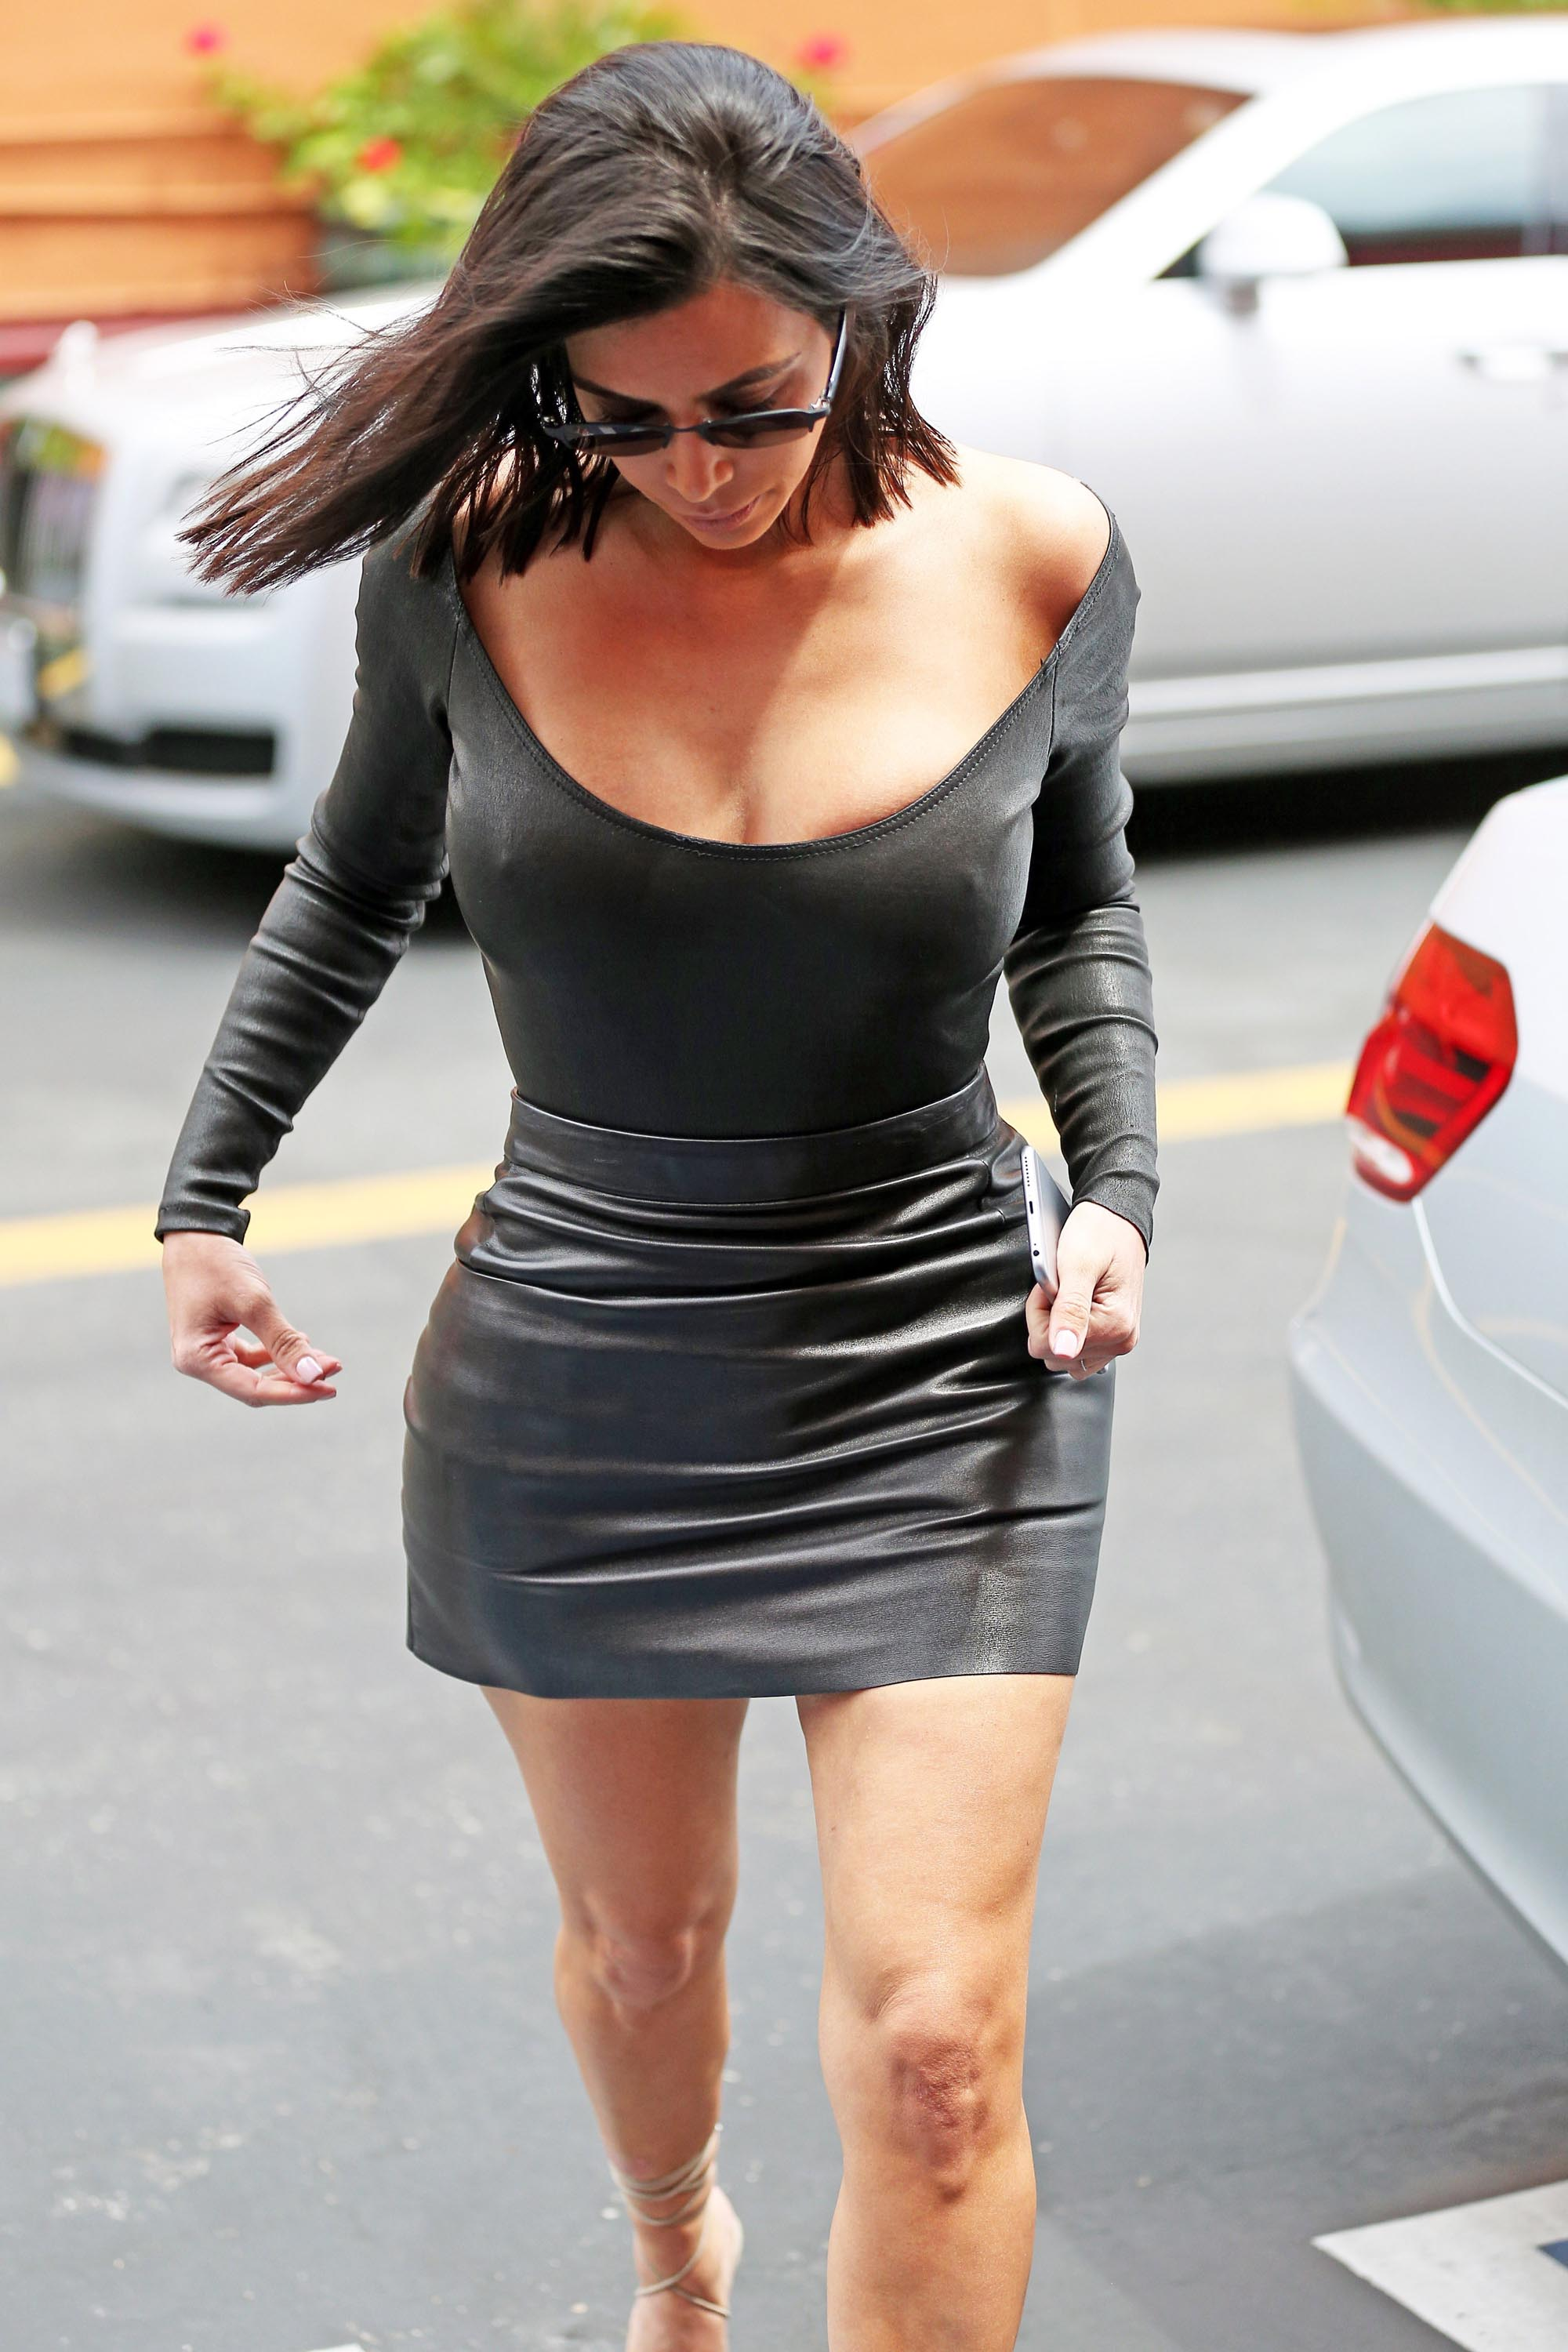 Kim Kardashian arrives to Film KUWTK